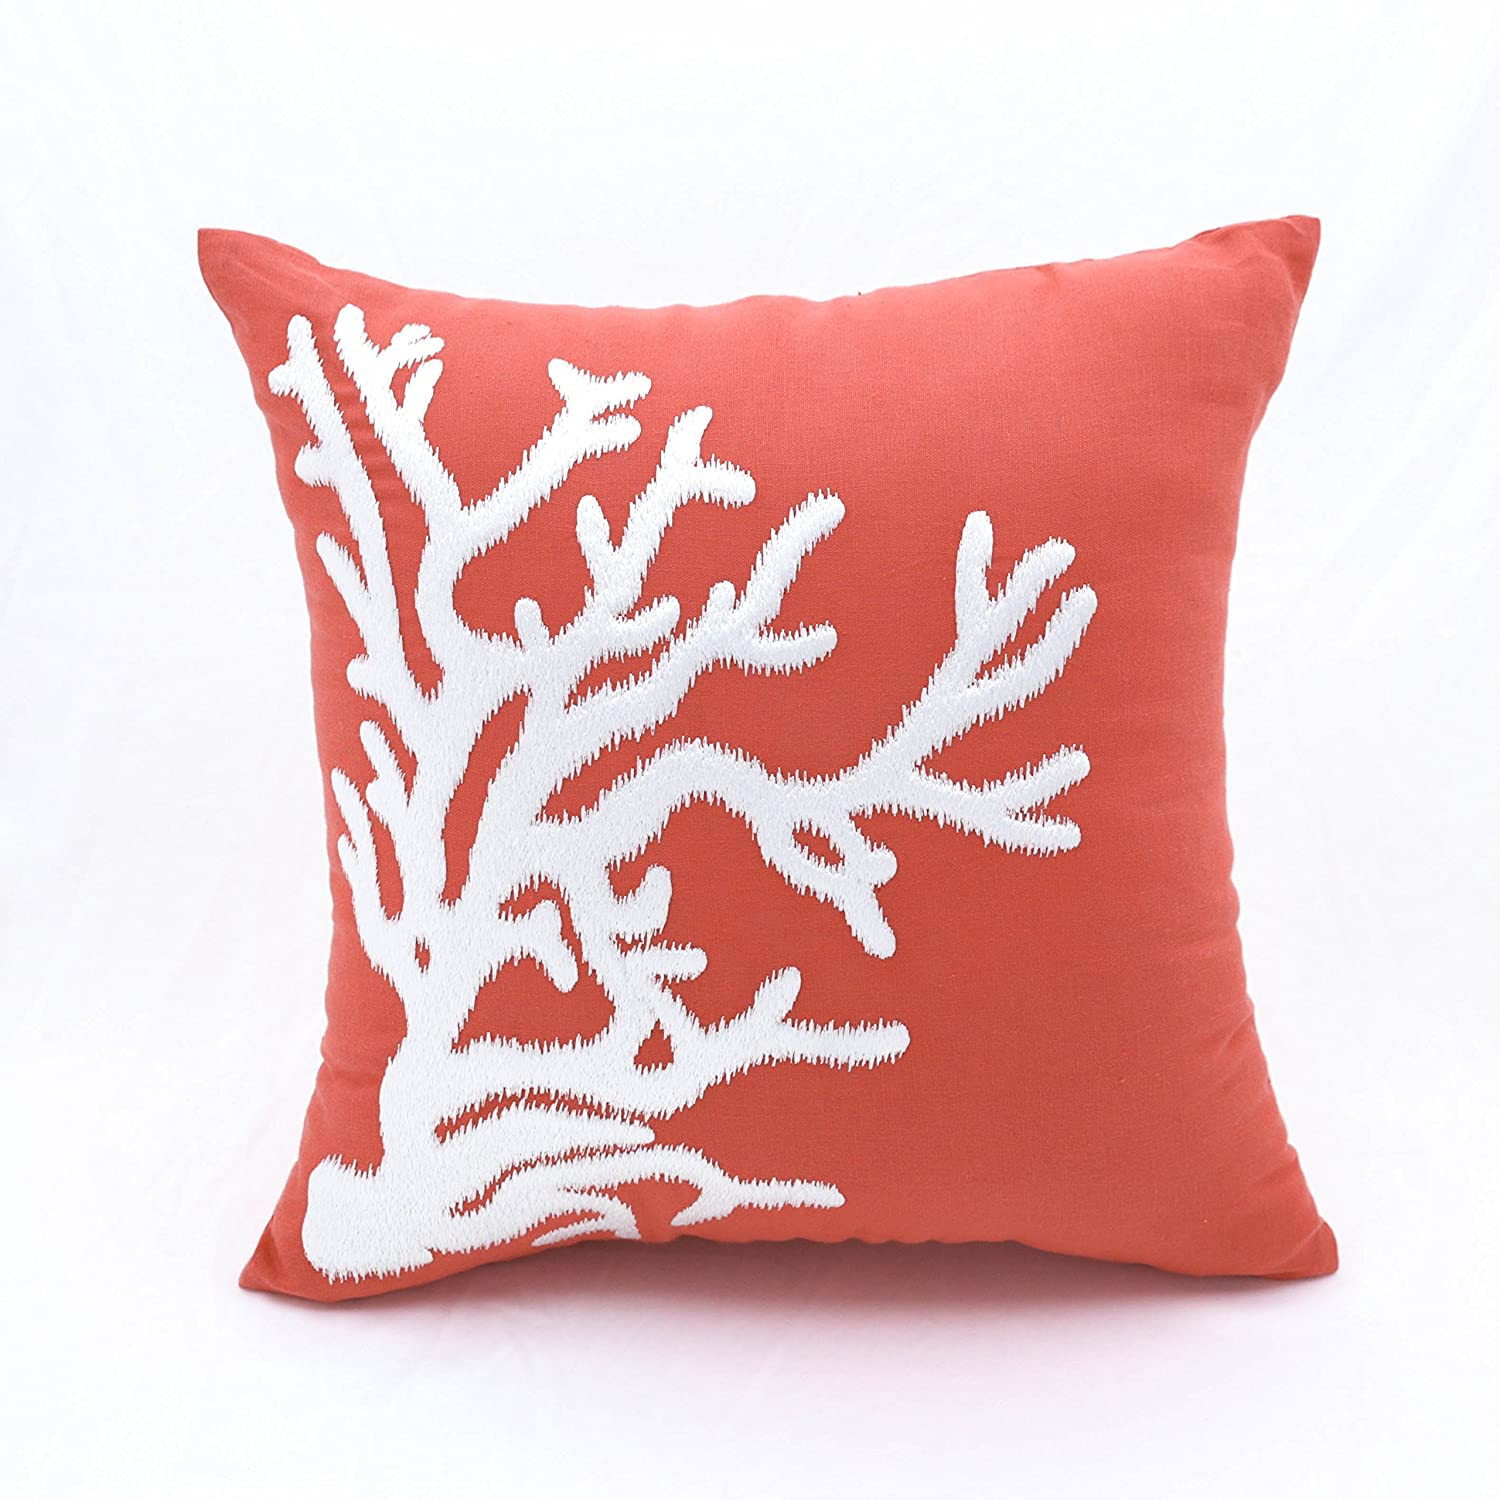 Amazon.com: Coral Throw Pillow Cover Orange Cotton Linen Square ...